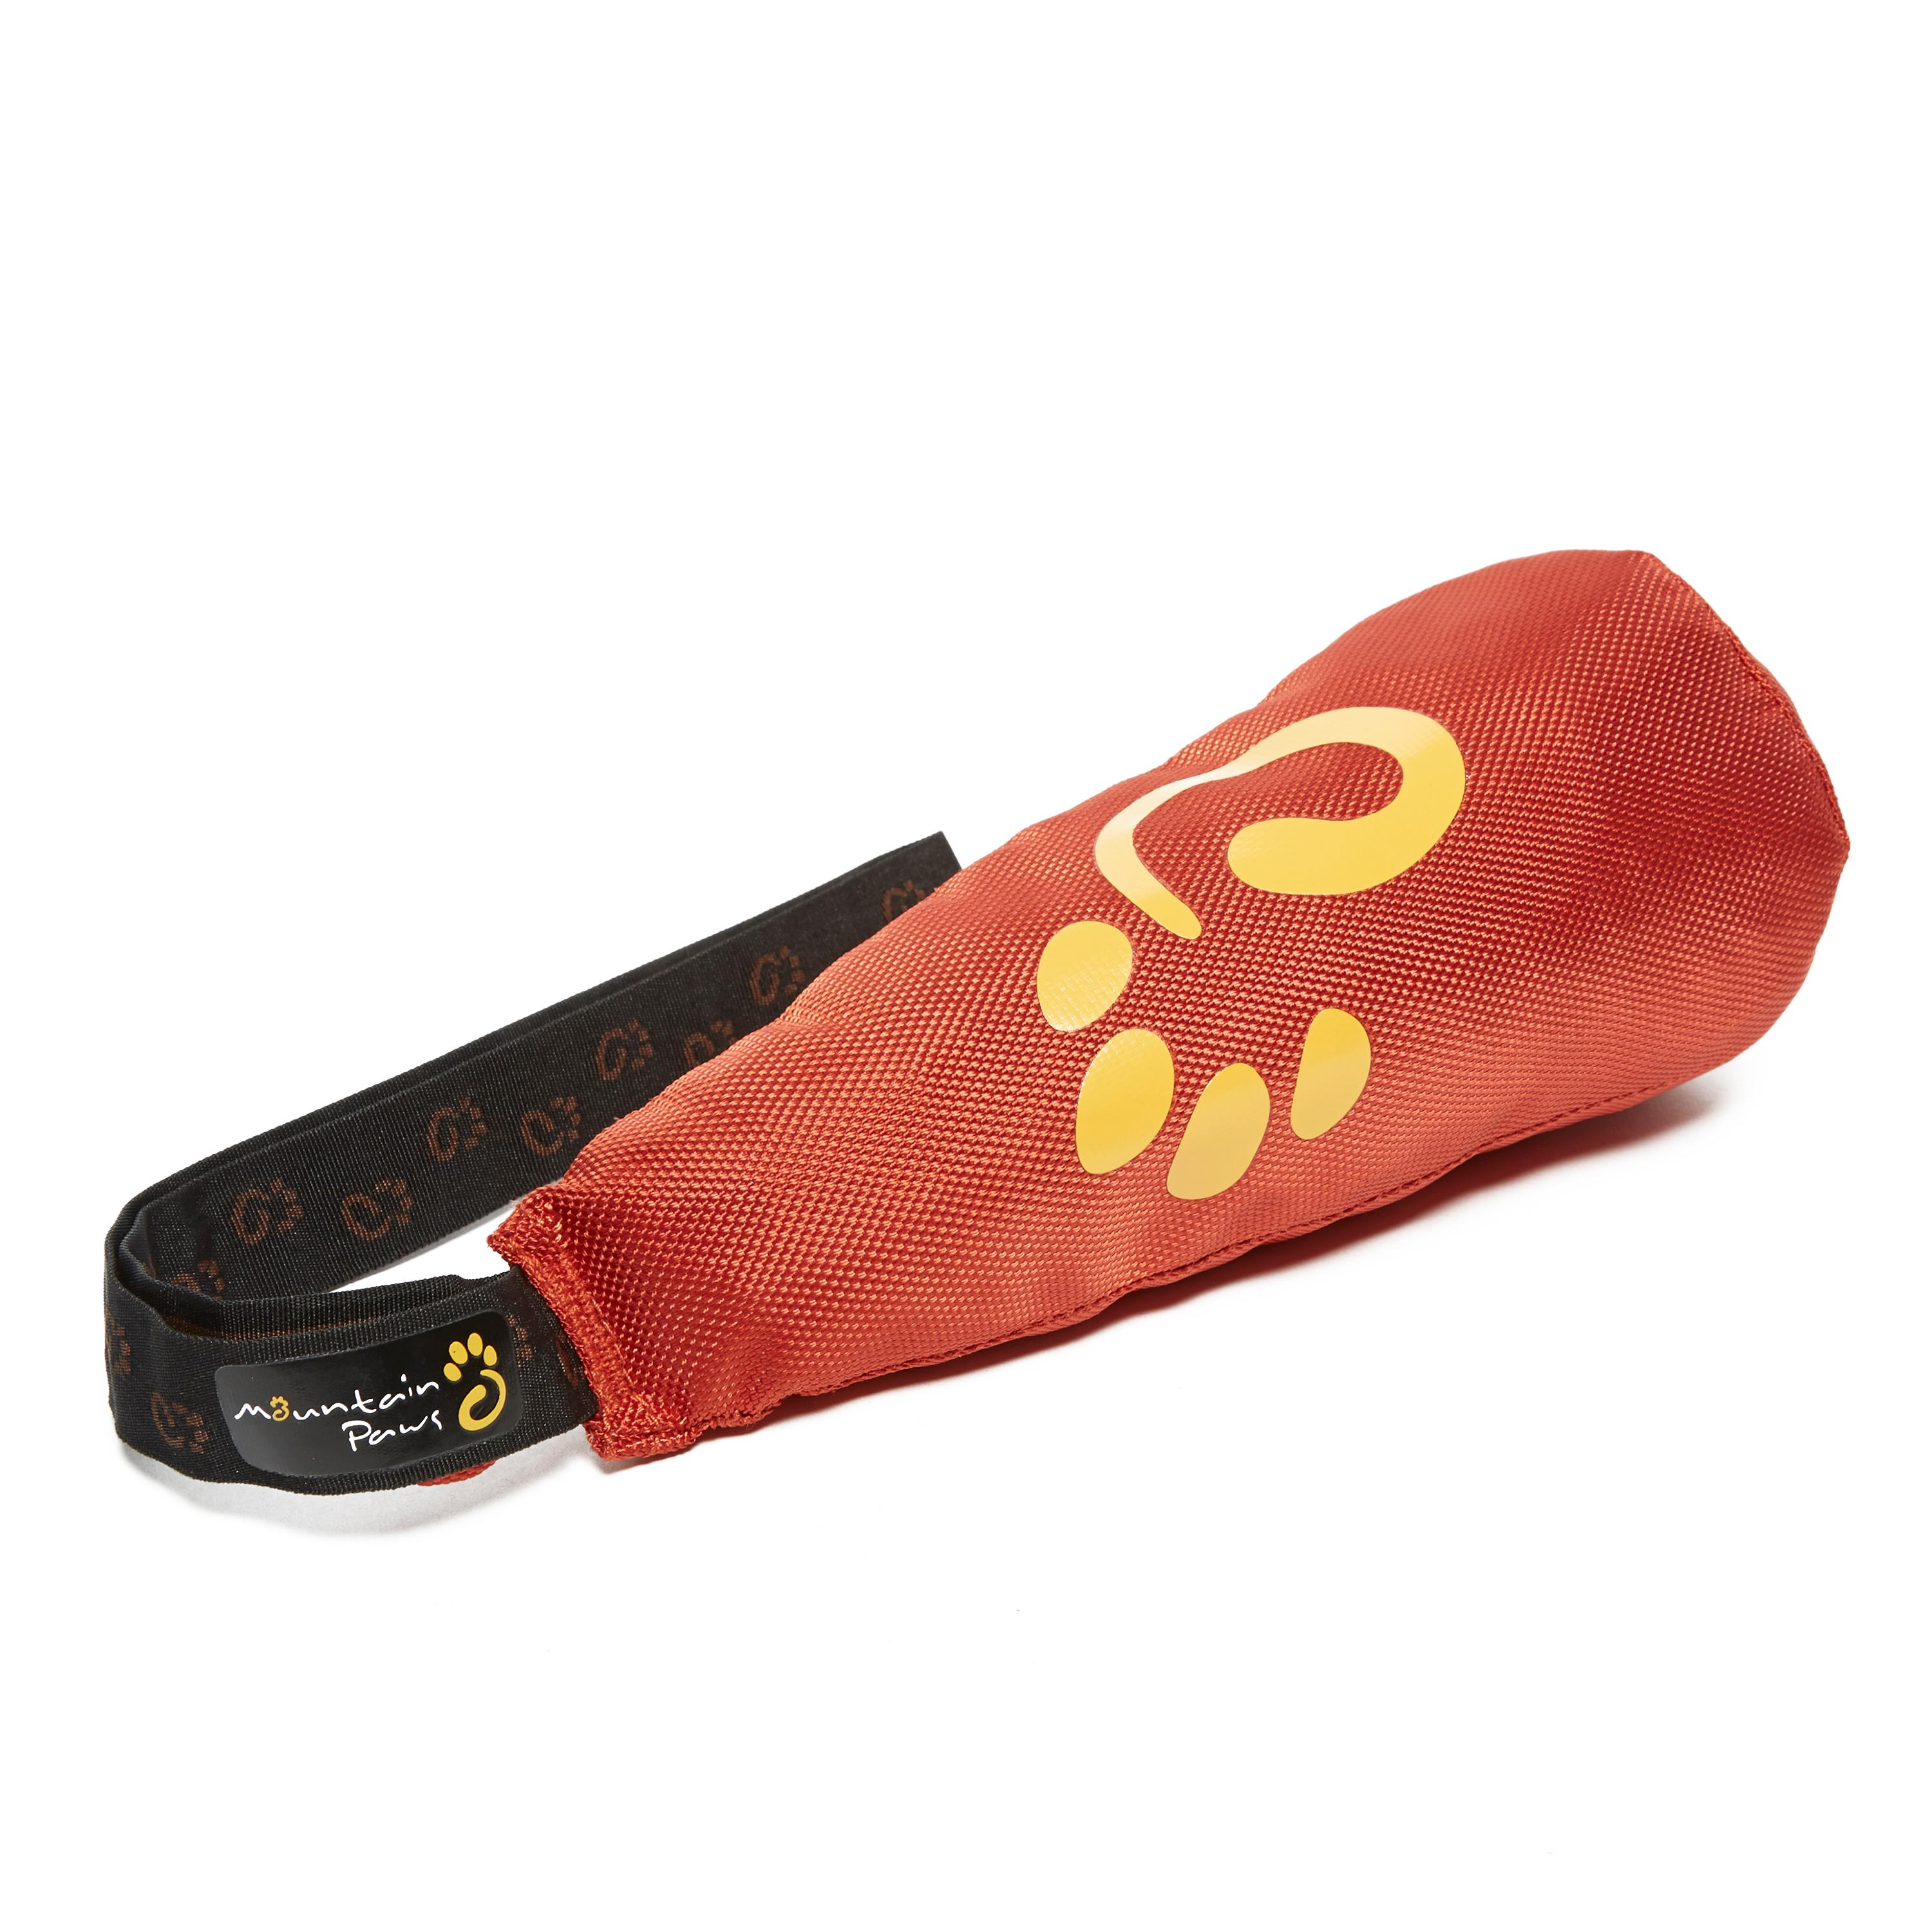 Image of Mountain Paws Clunk Throw Toy, Red